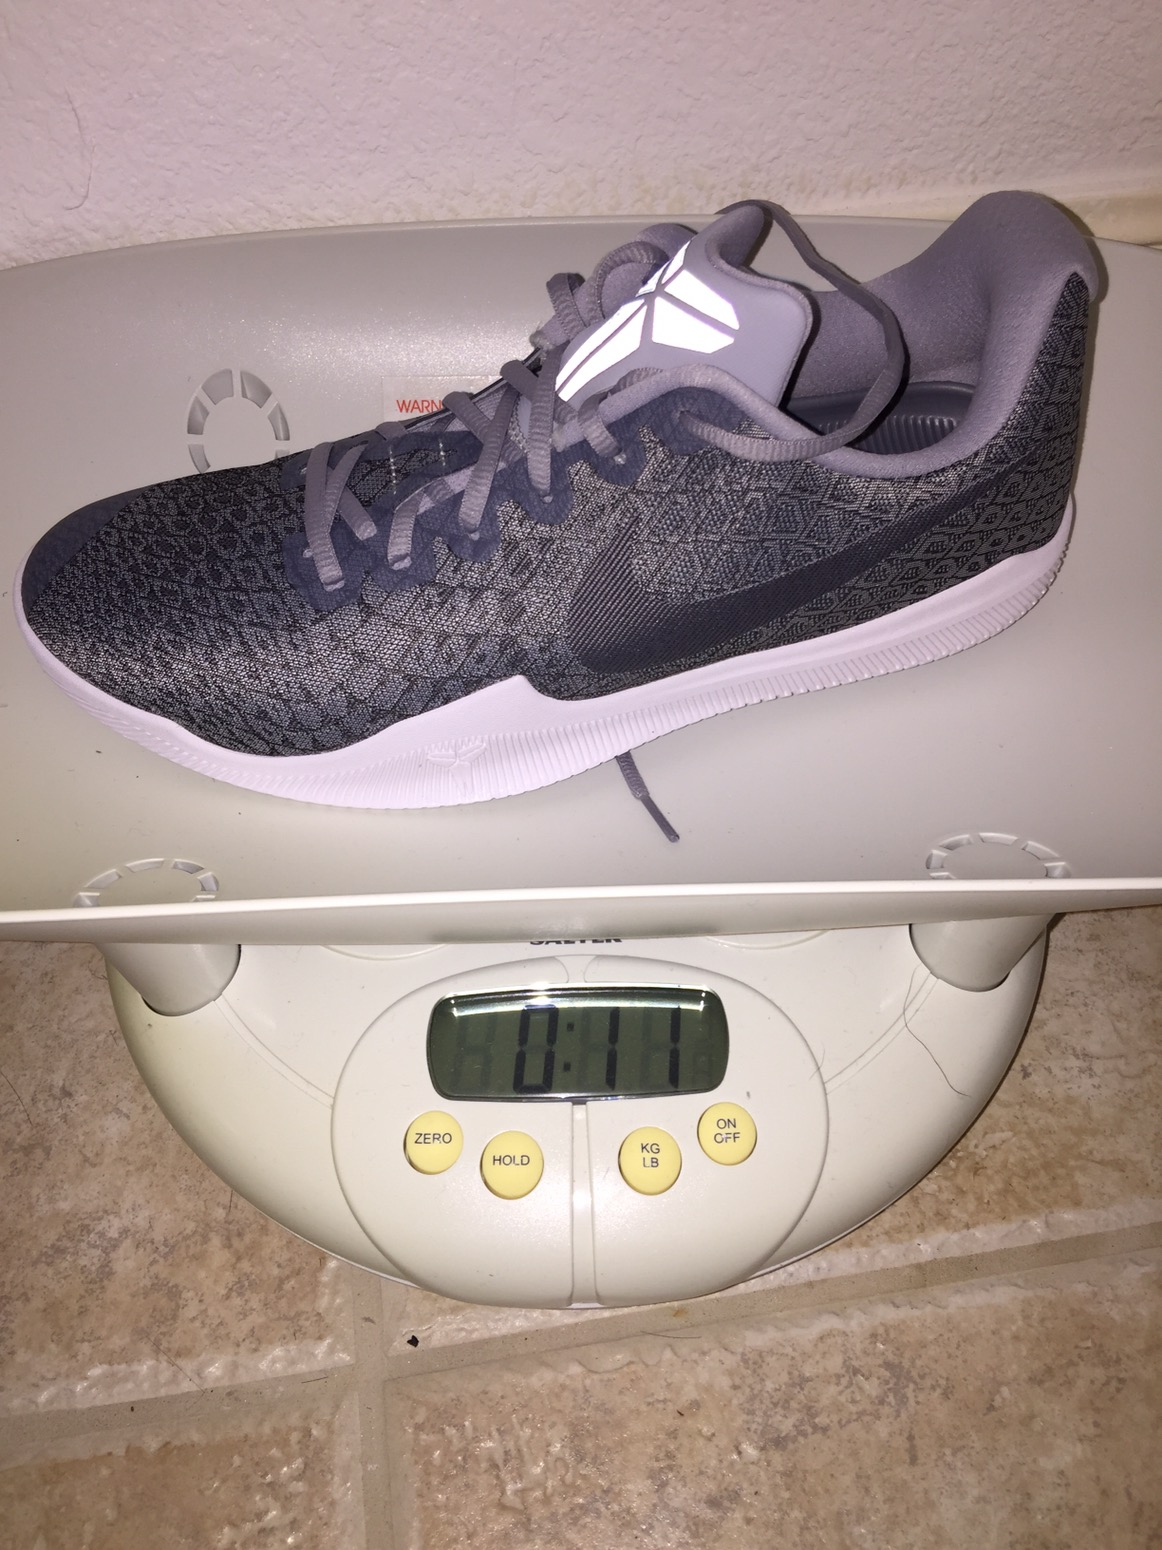 nike kobe mamba instinct weight